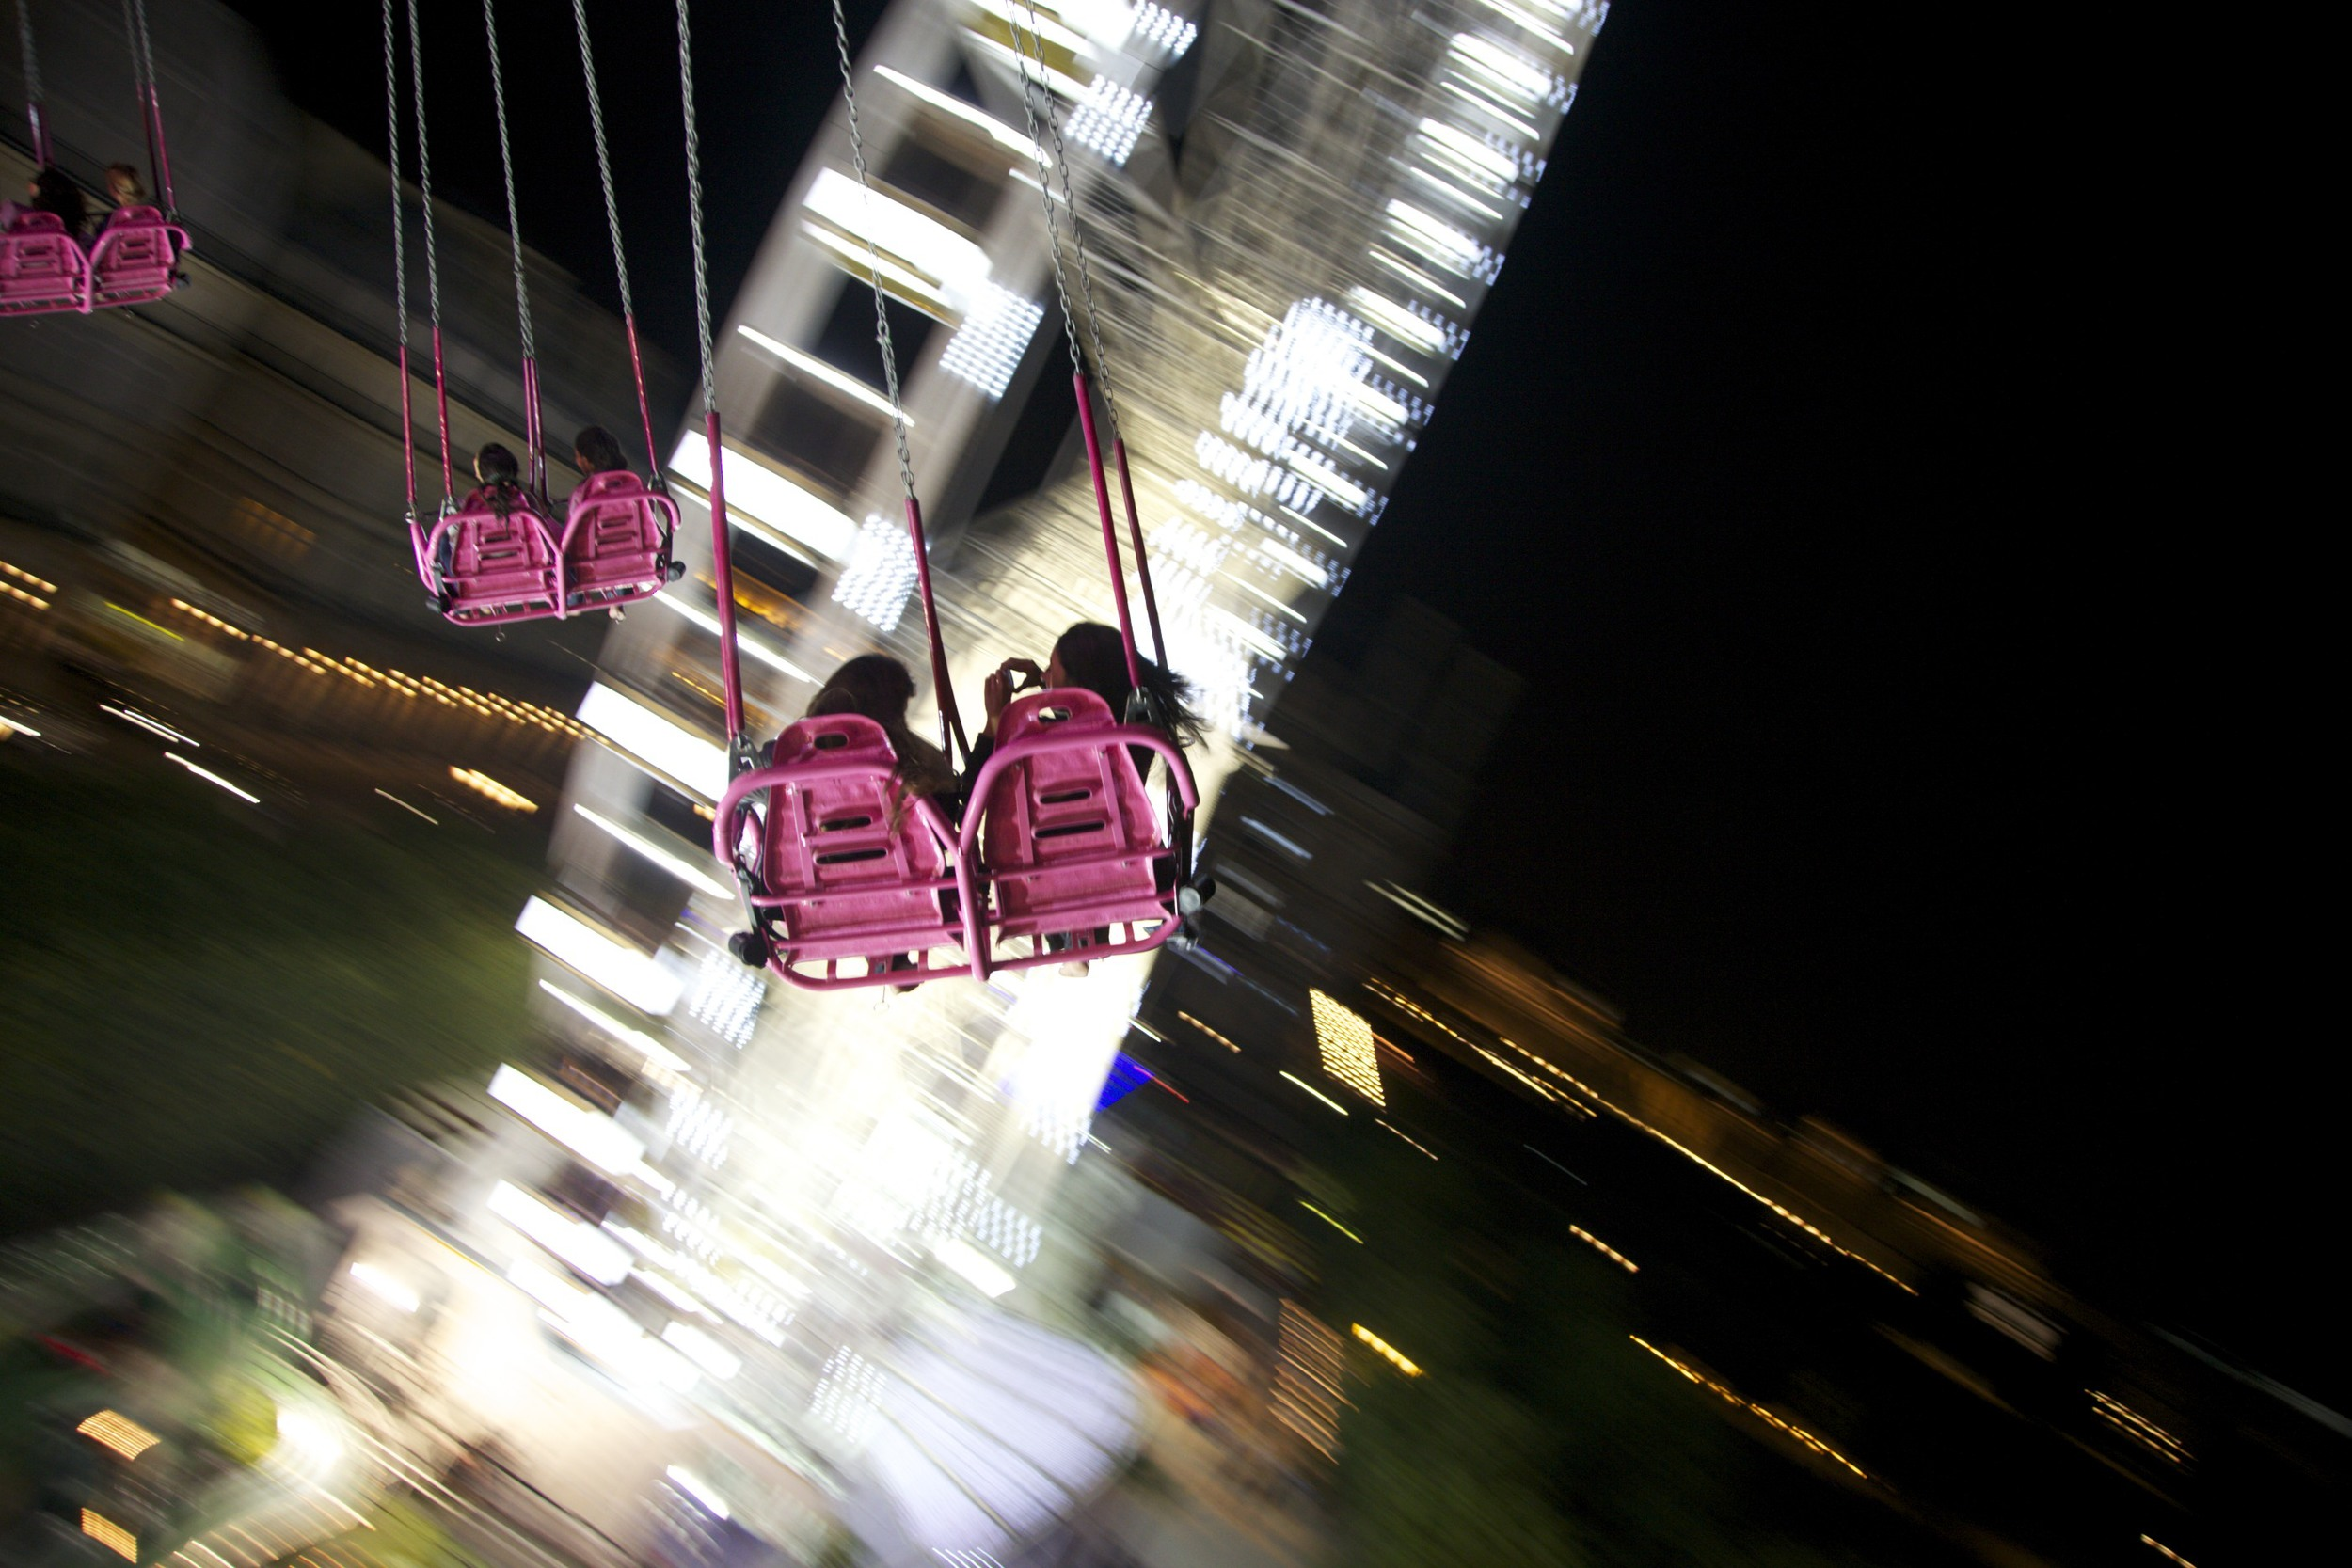 Riding the Air Swing at the carnival.